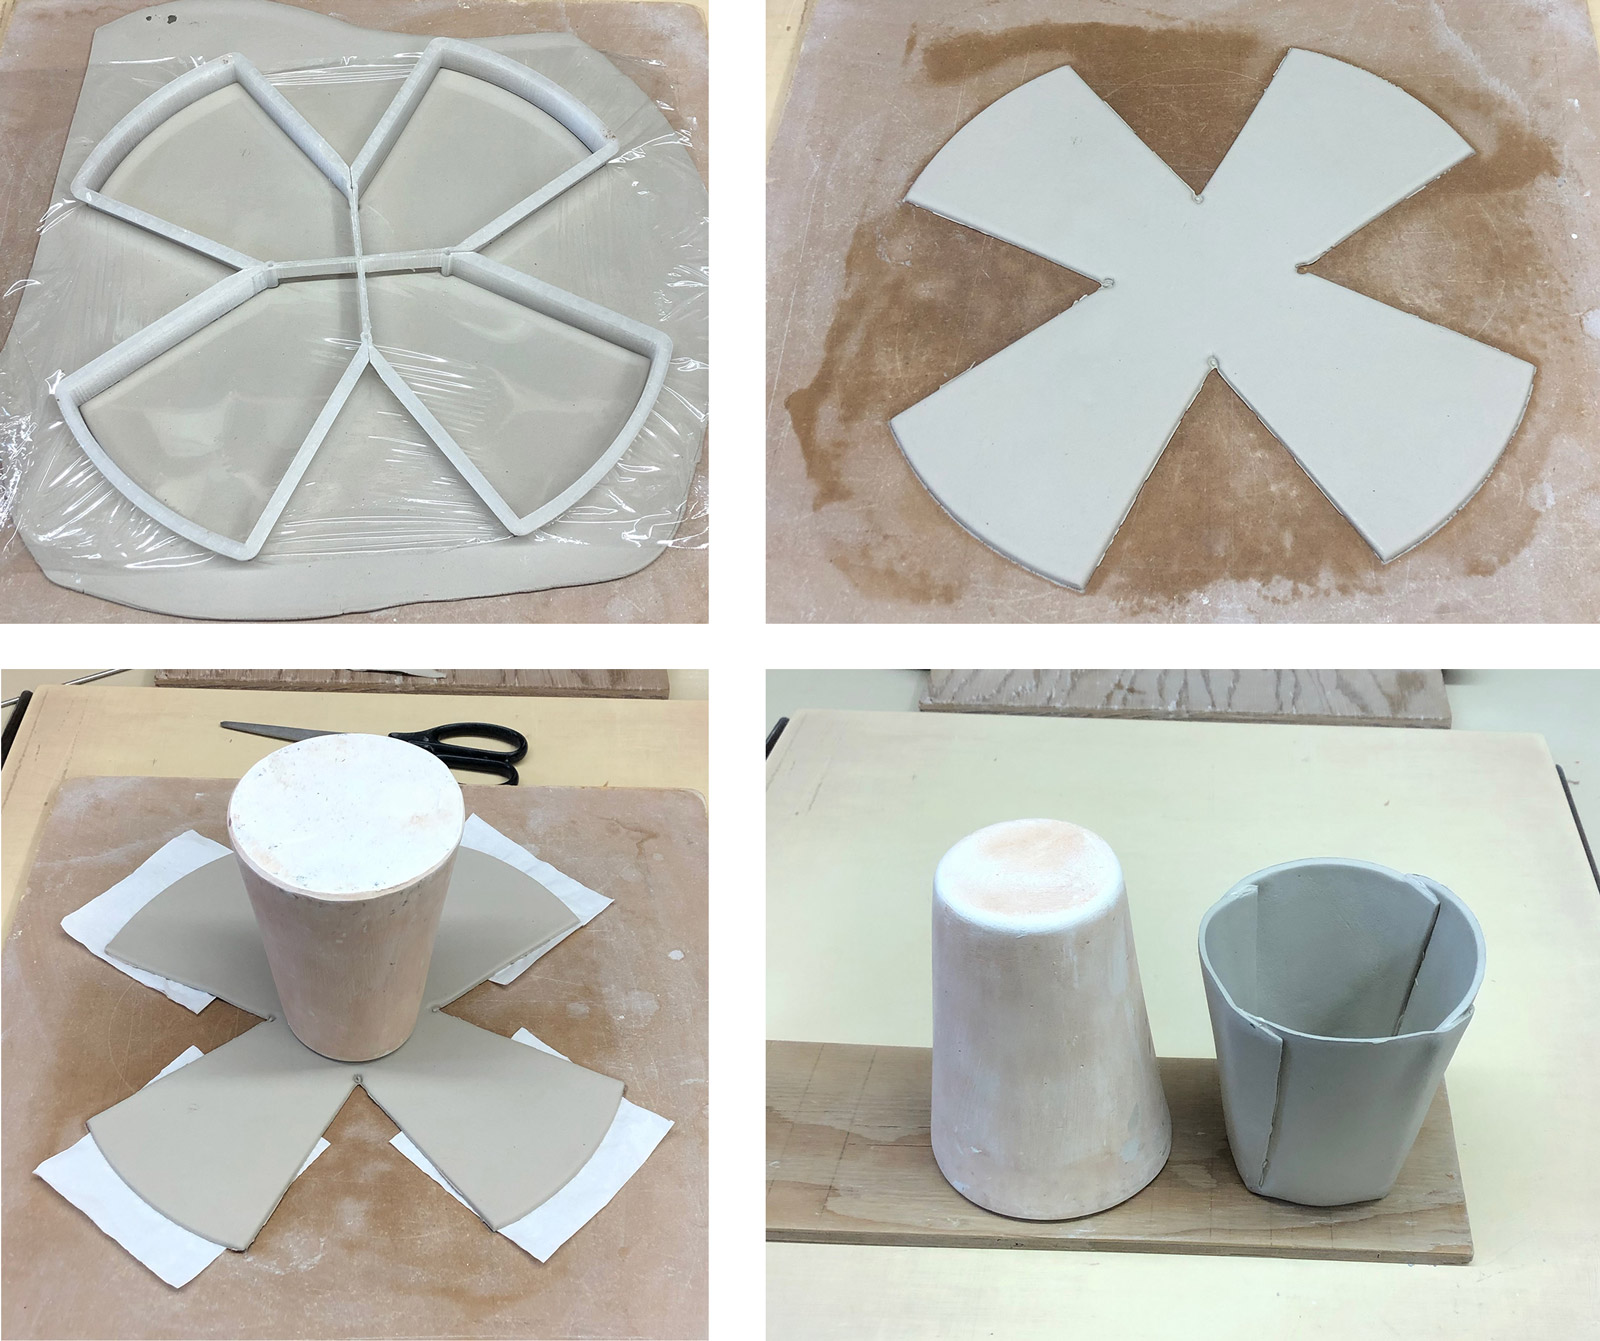 Large cookie-cutter 3D-printed in four pieces